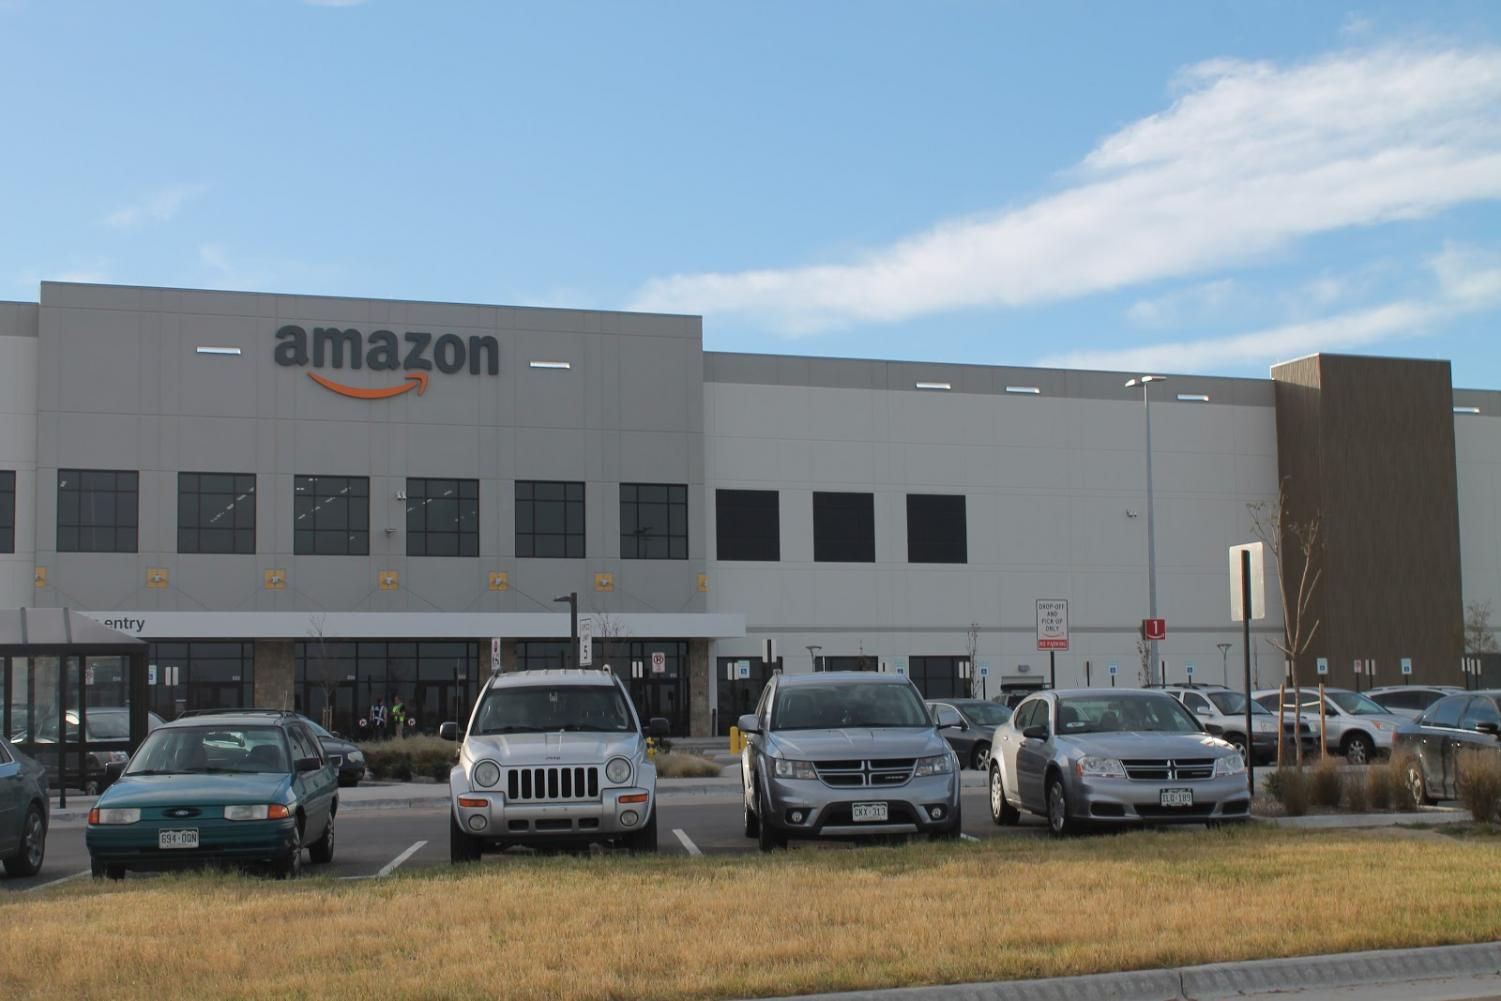 The new Amazon Headquarters near the I-25 Corridor